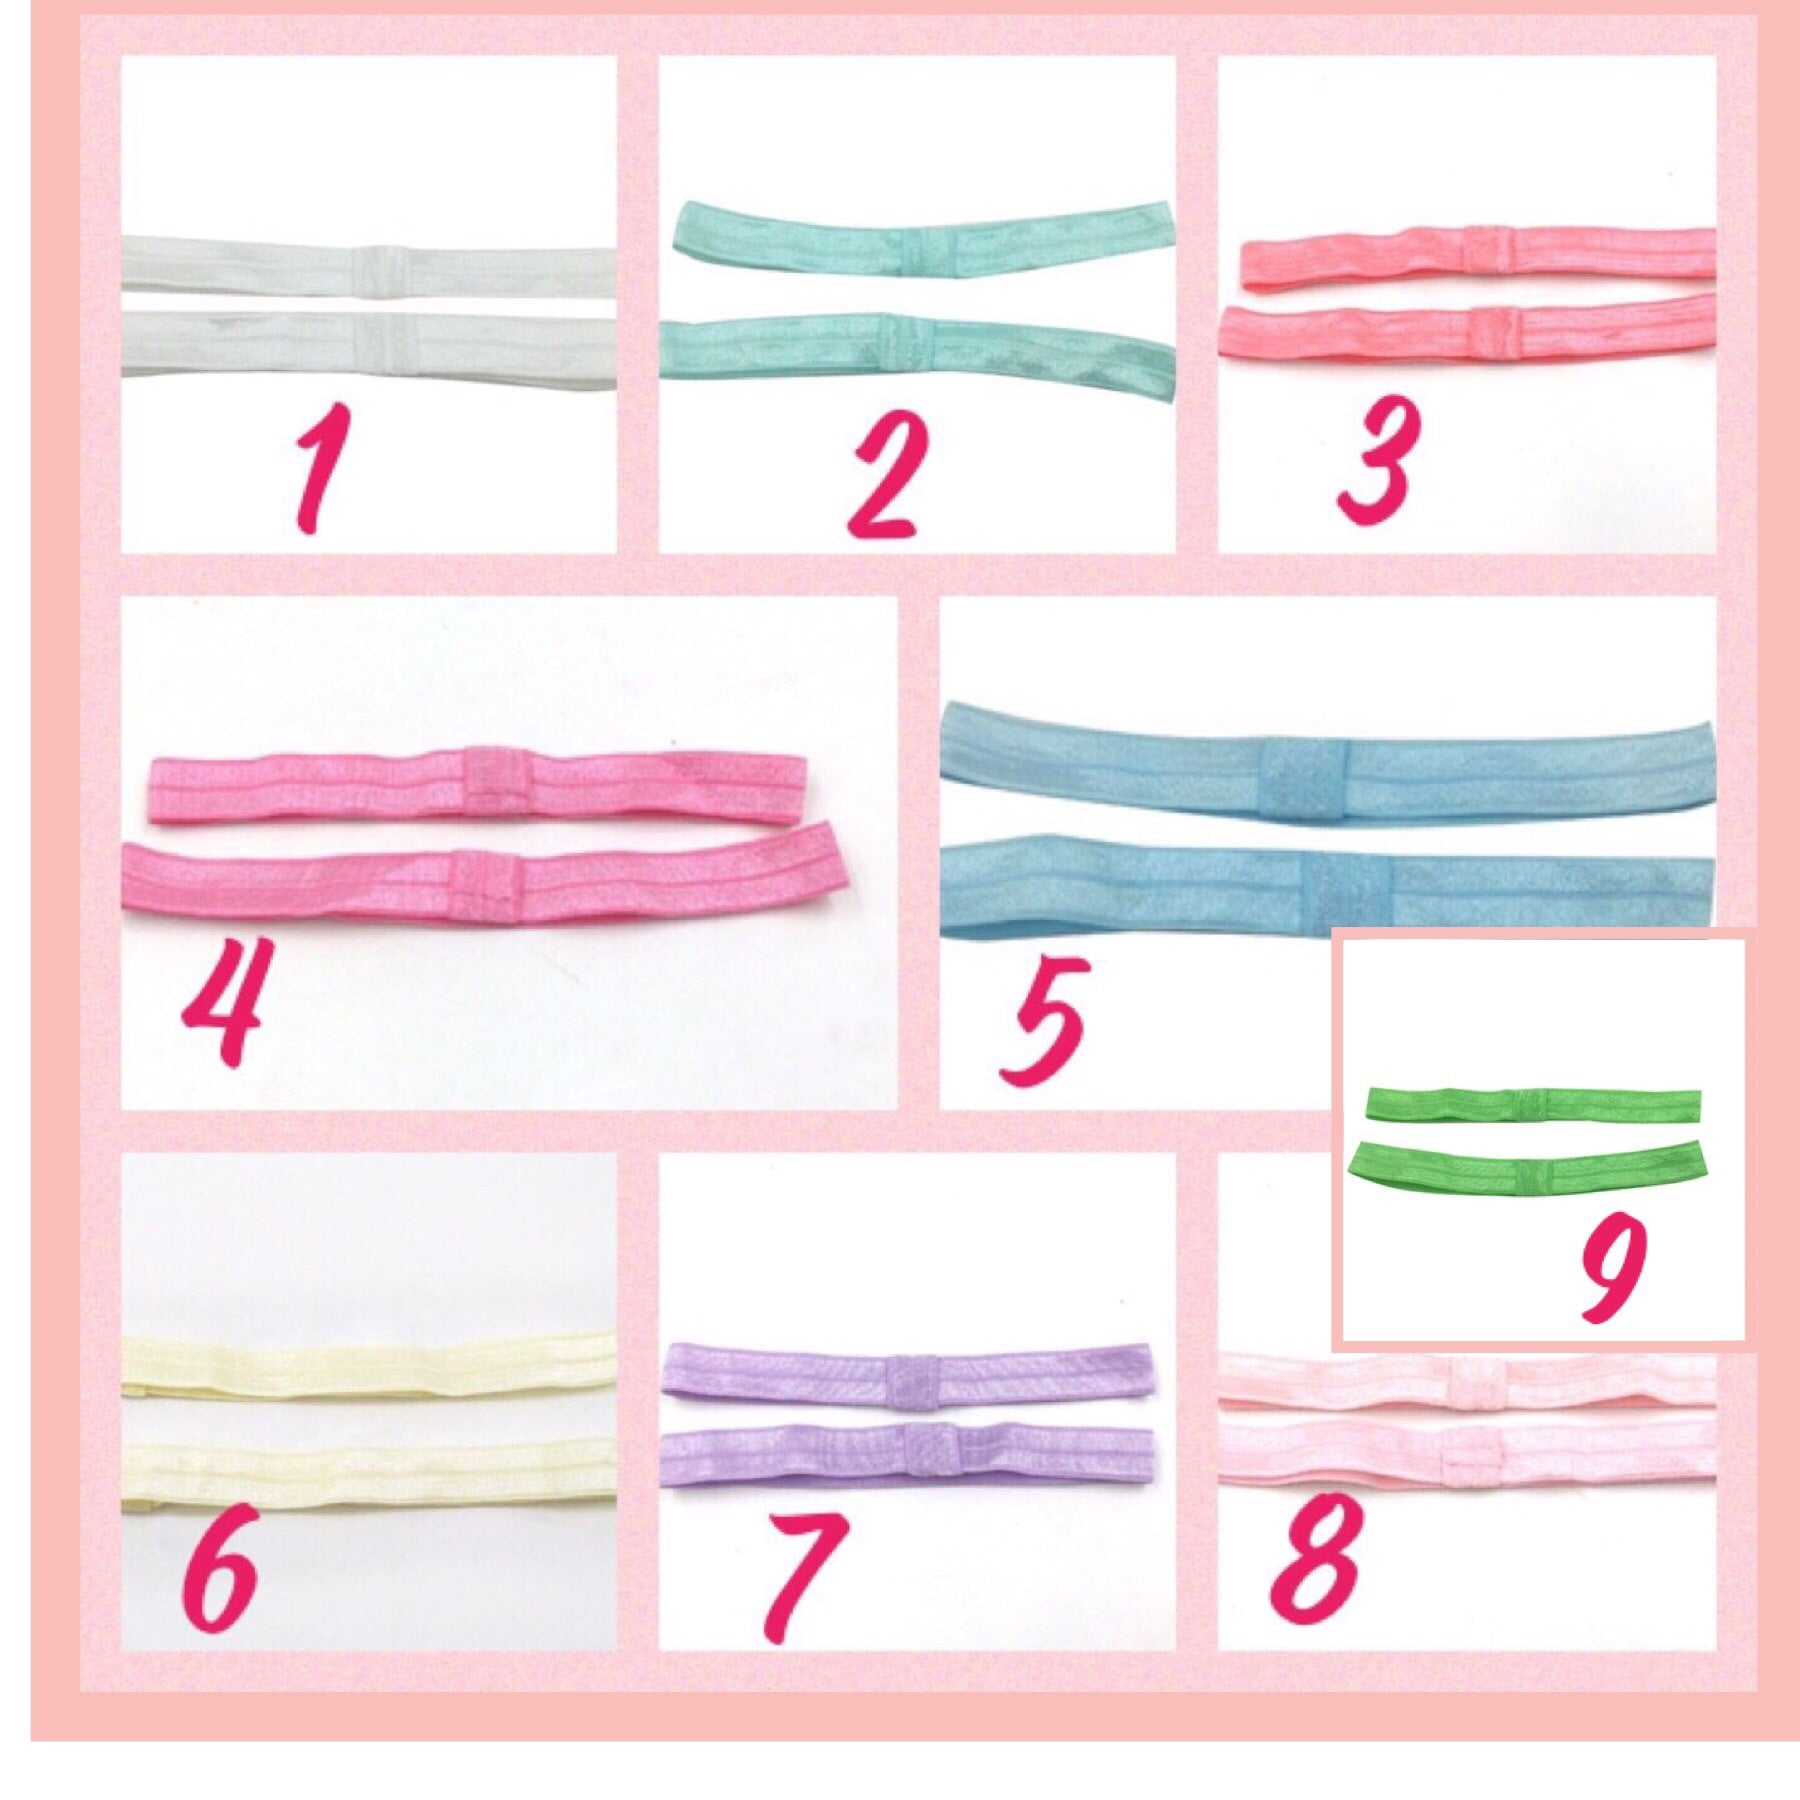 Soft foe head band 6-12 months